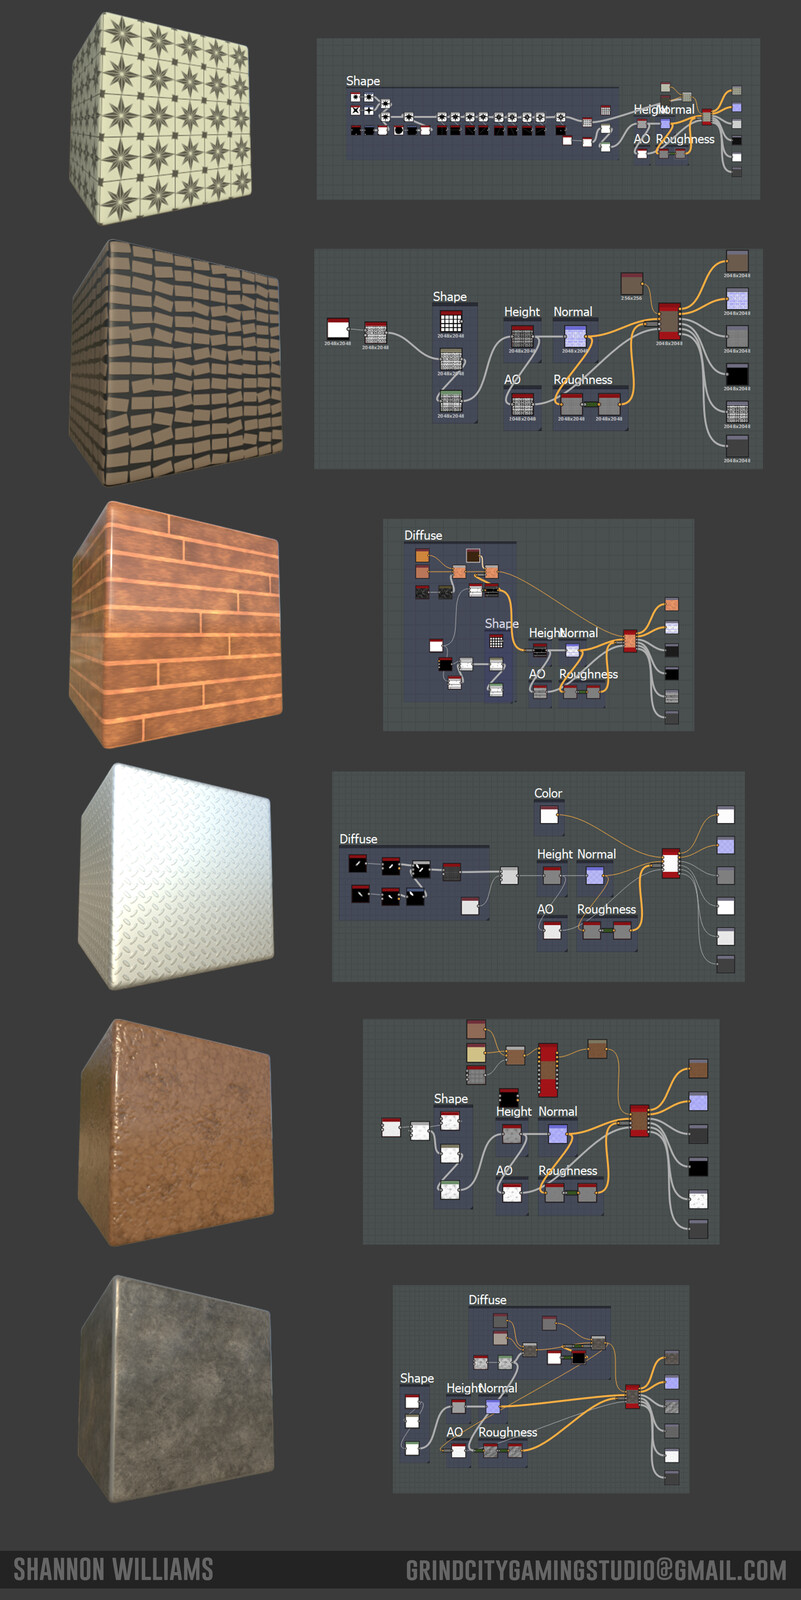 These were the materials that I created from scratch in Substance Designer.